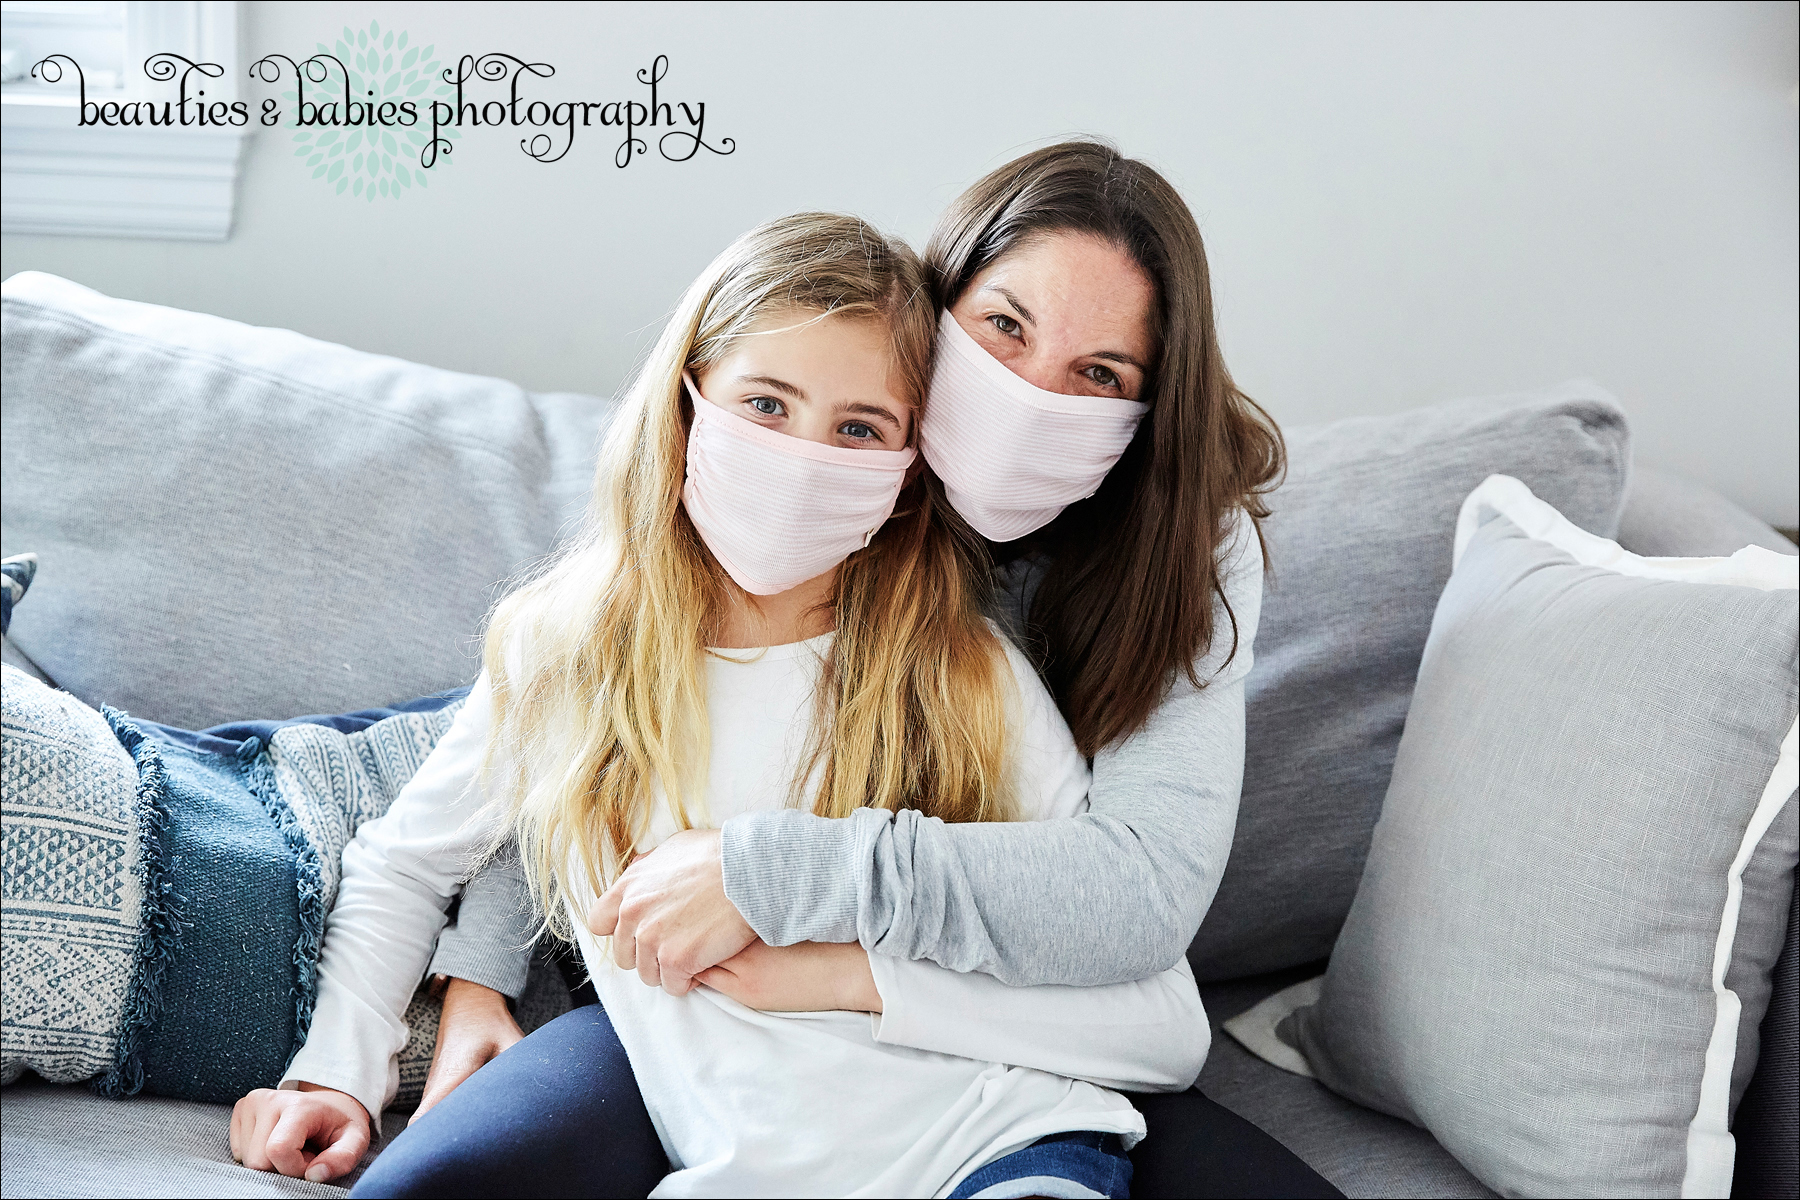 At home family photography coronavirus quarantine life